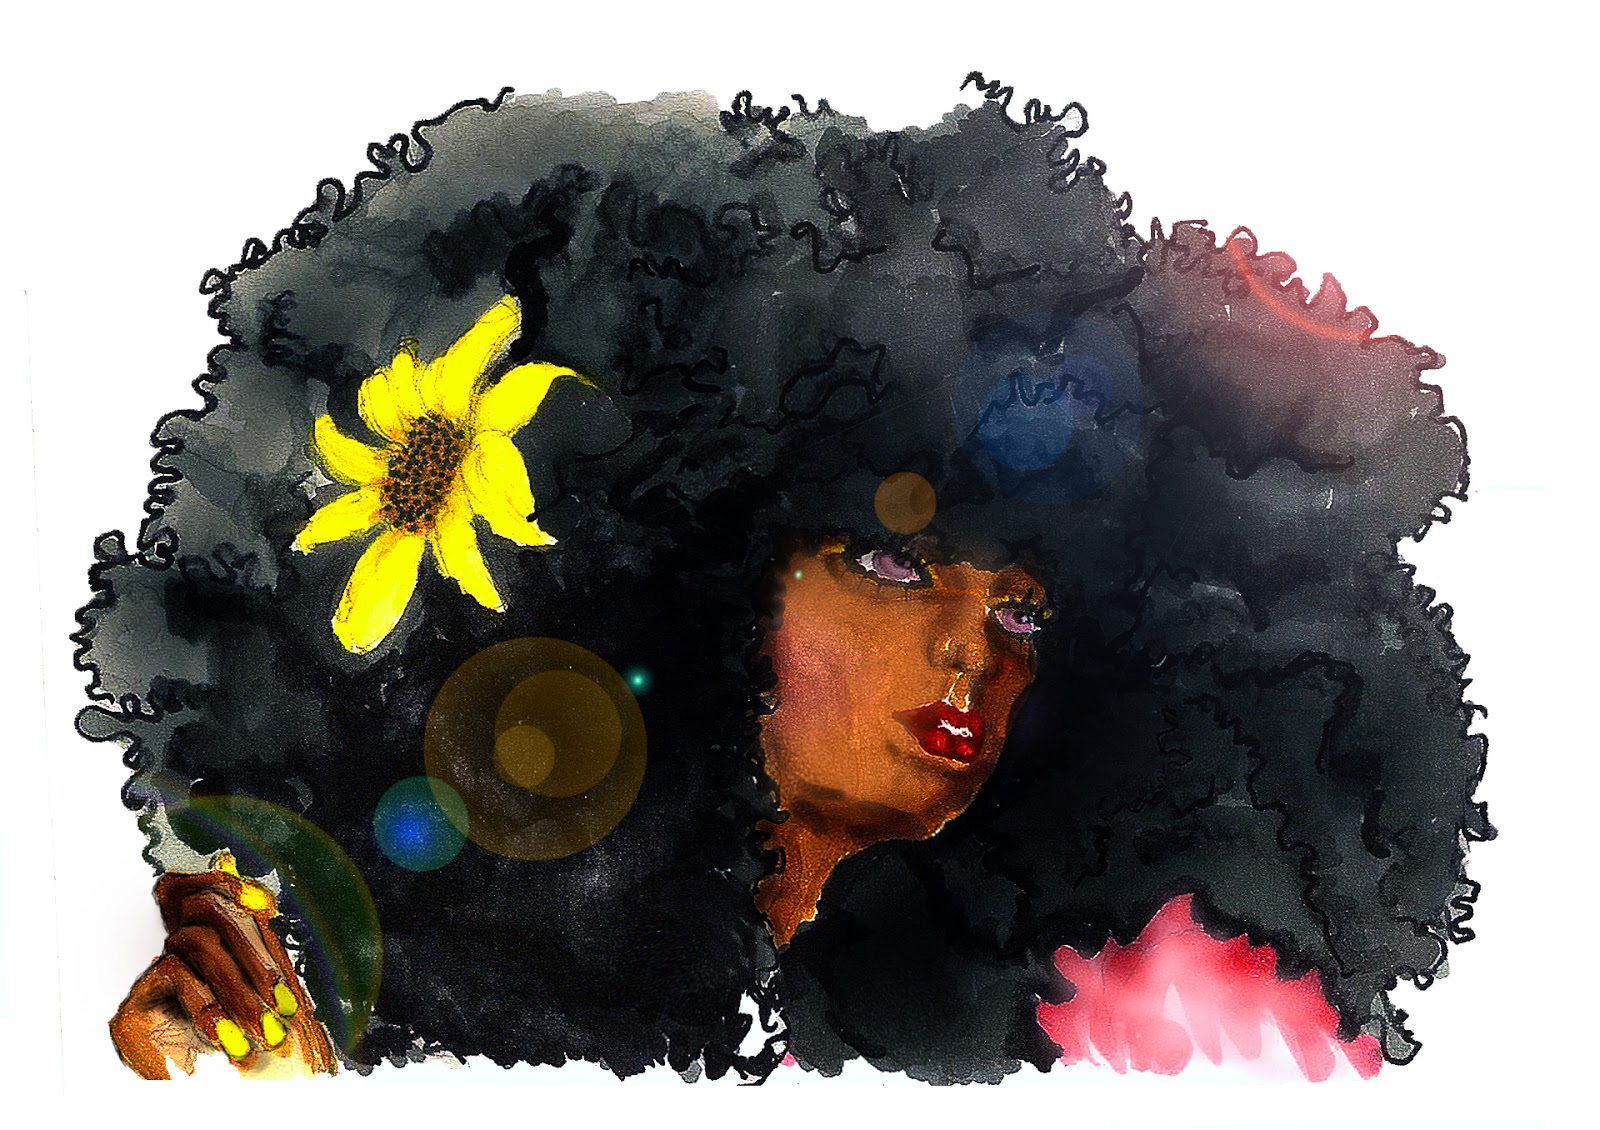 Afro woman,, illustration, promarker, crea, marqueur marker, sunshine, sun,happyness, woohzoolyn